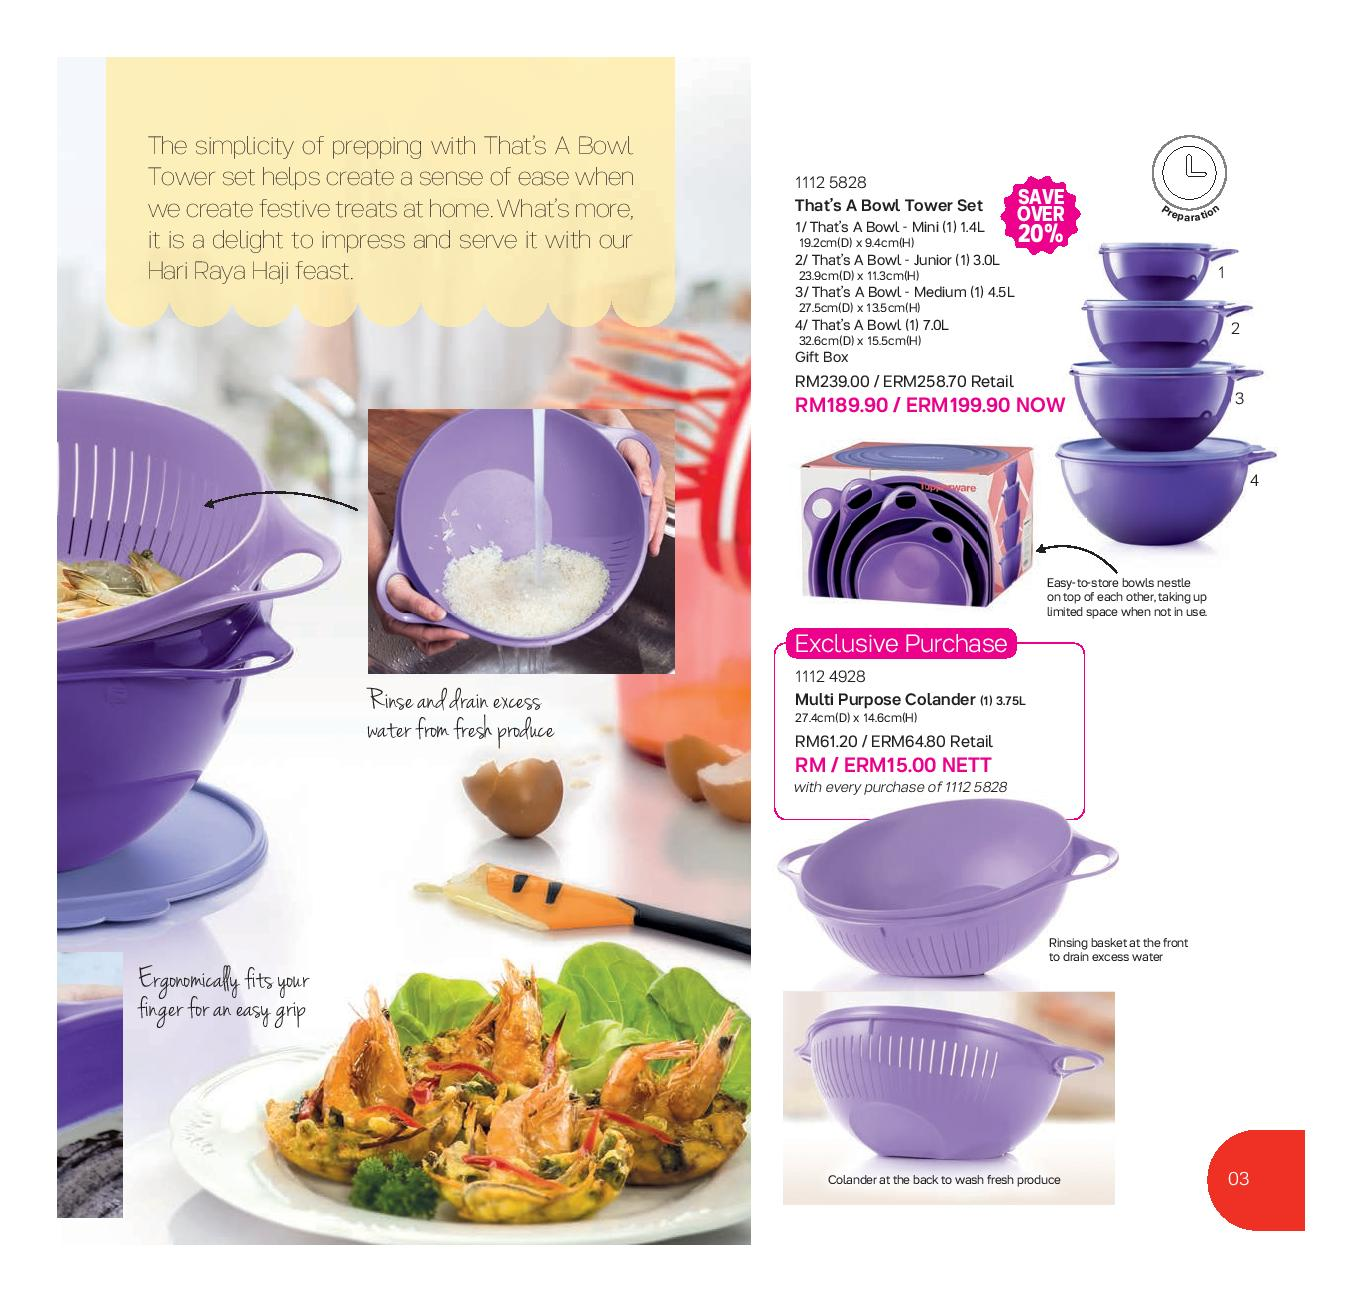 tupperware catalog 13 august 2016 30 september 2016 tupperware kakakshop tupperware. Black Bedroom Furniture Sets. Home Design Ideas